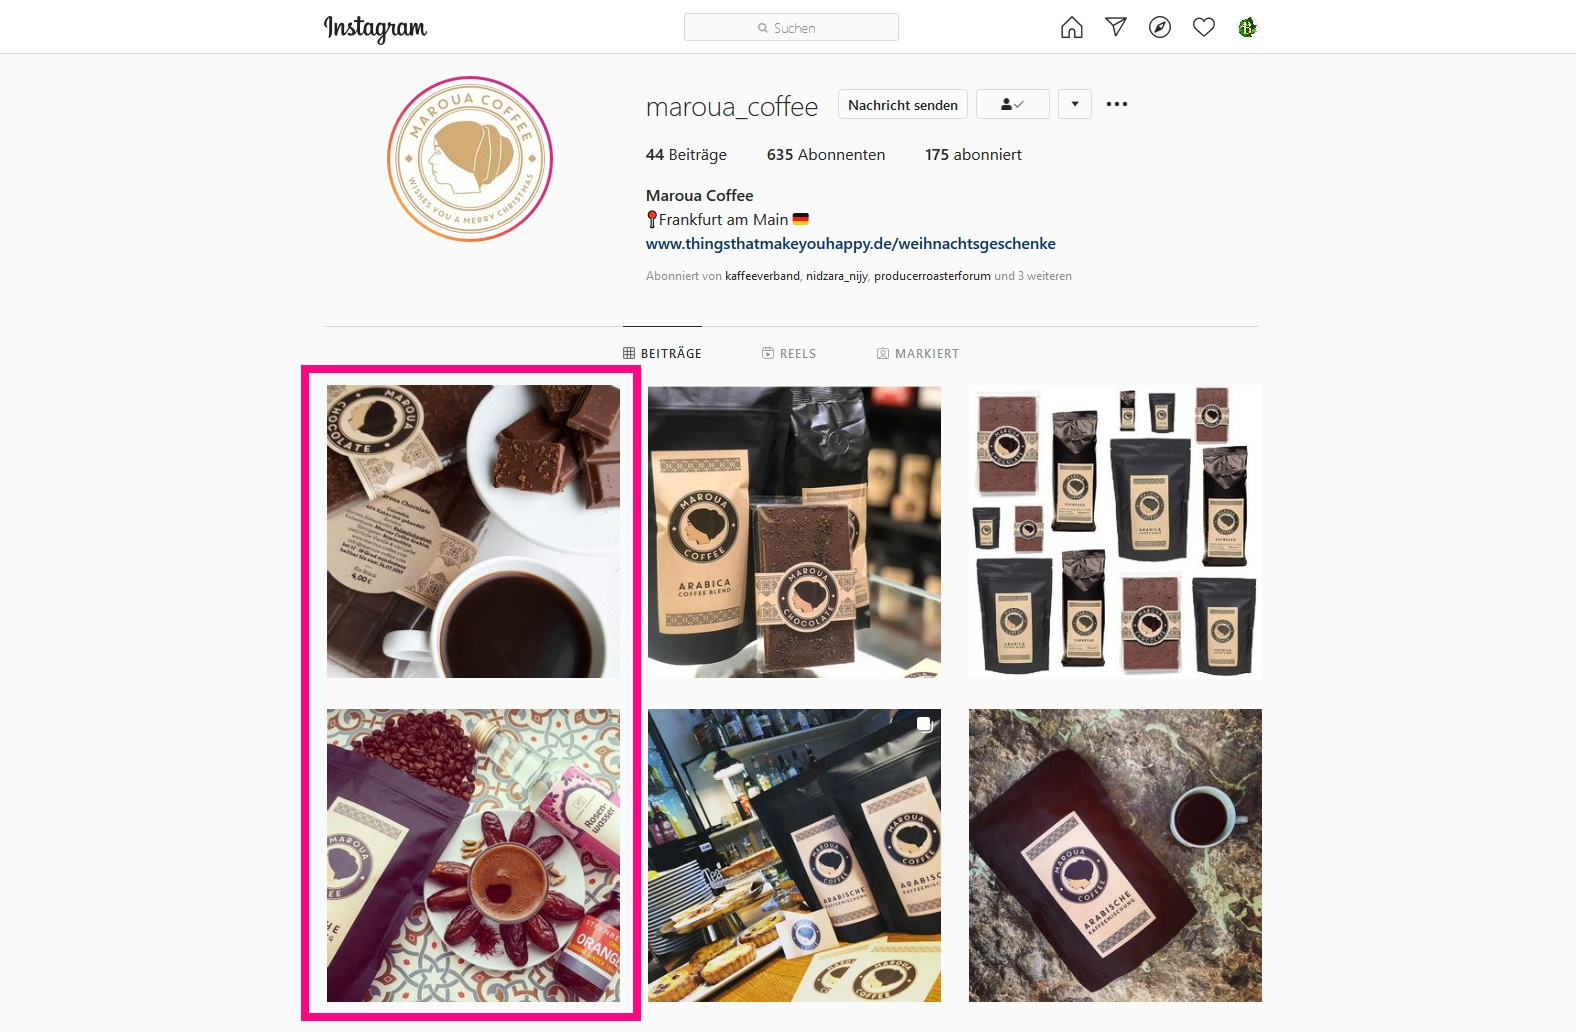 Bunaa - Maroua Coffee Instagram